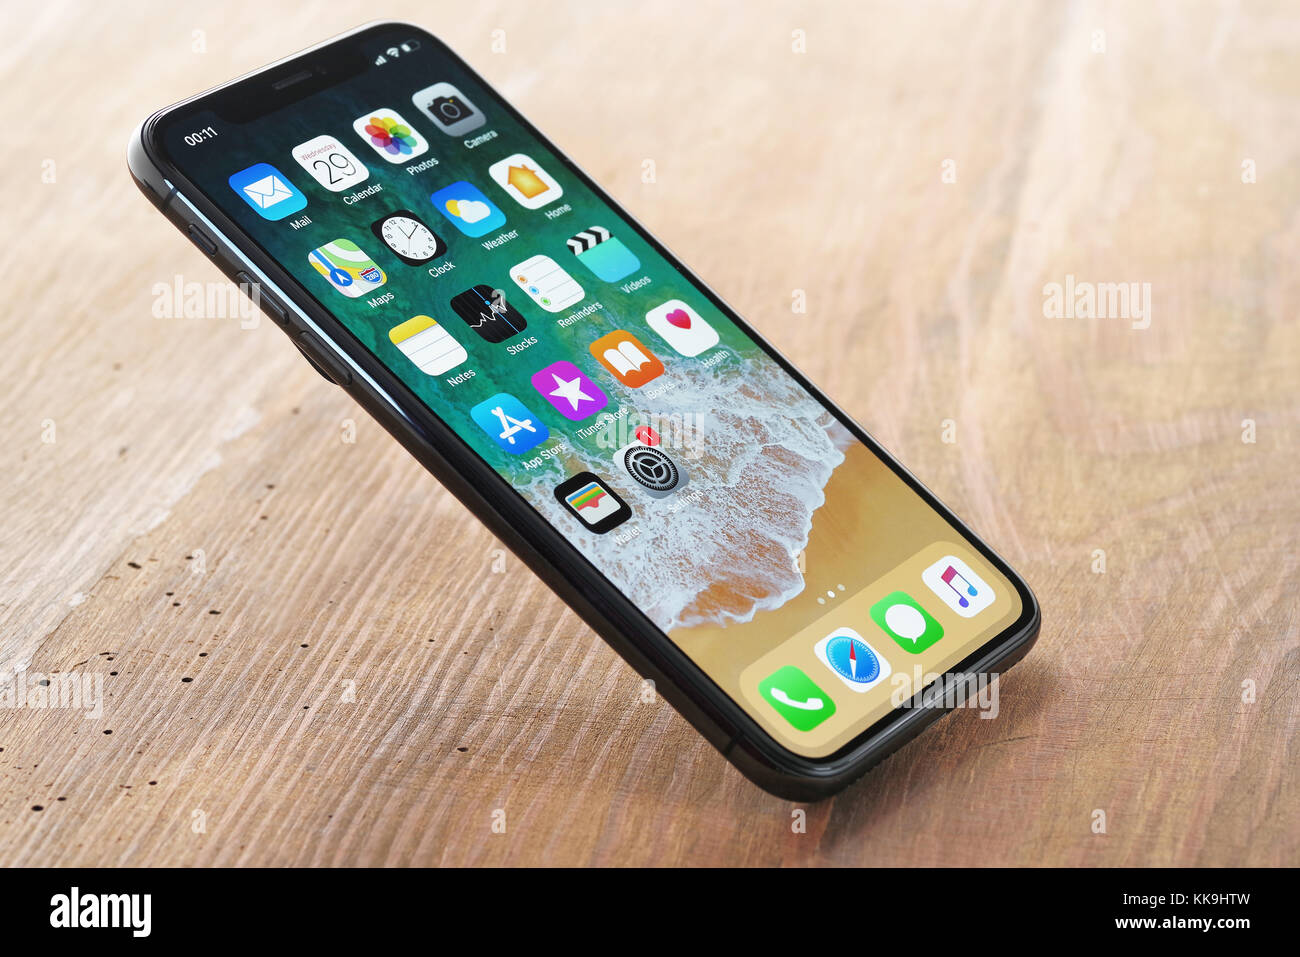 Koszalin, Poland – November 29, 2016: Space gray iPhone X on white background. The iPhone X is smart phone with - Stock Image